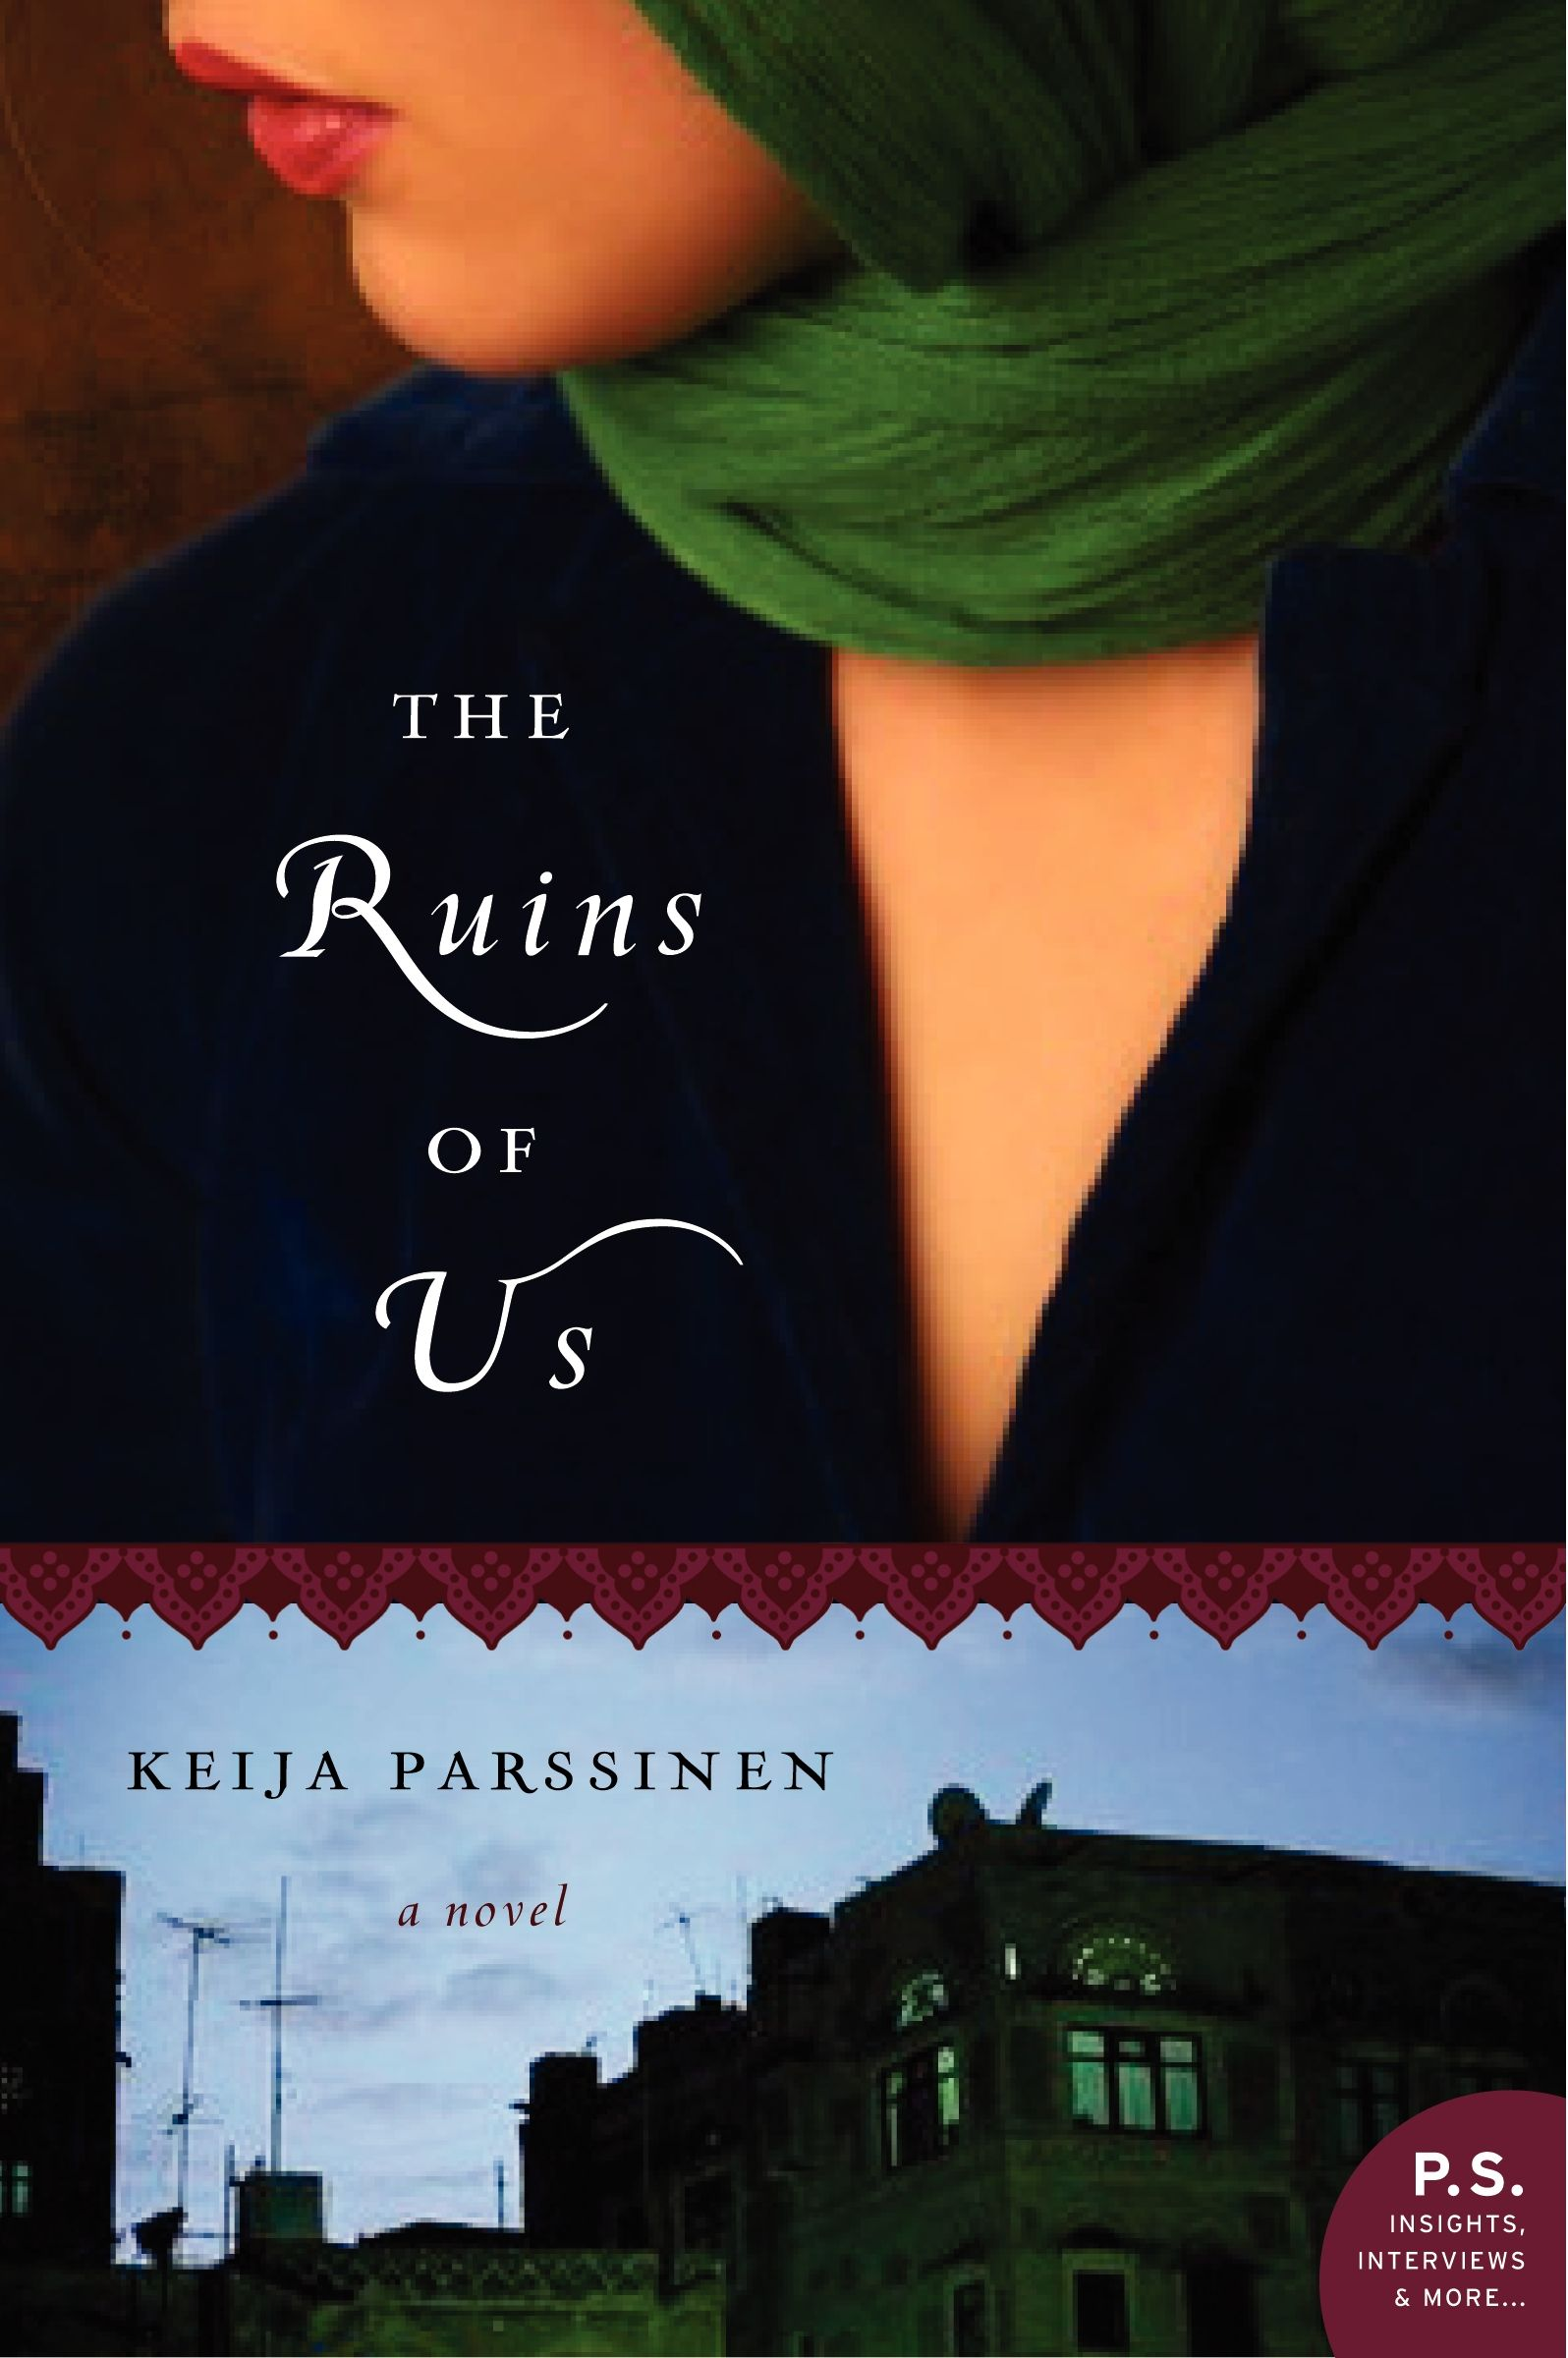 The Ruins of Us, by Keija Parssinen. I picked up this book